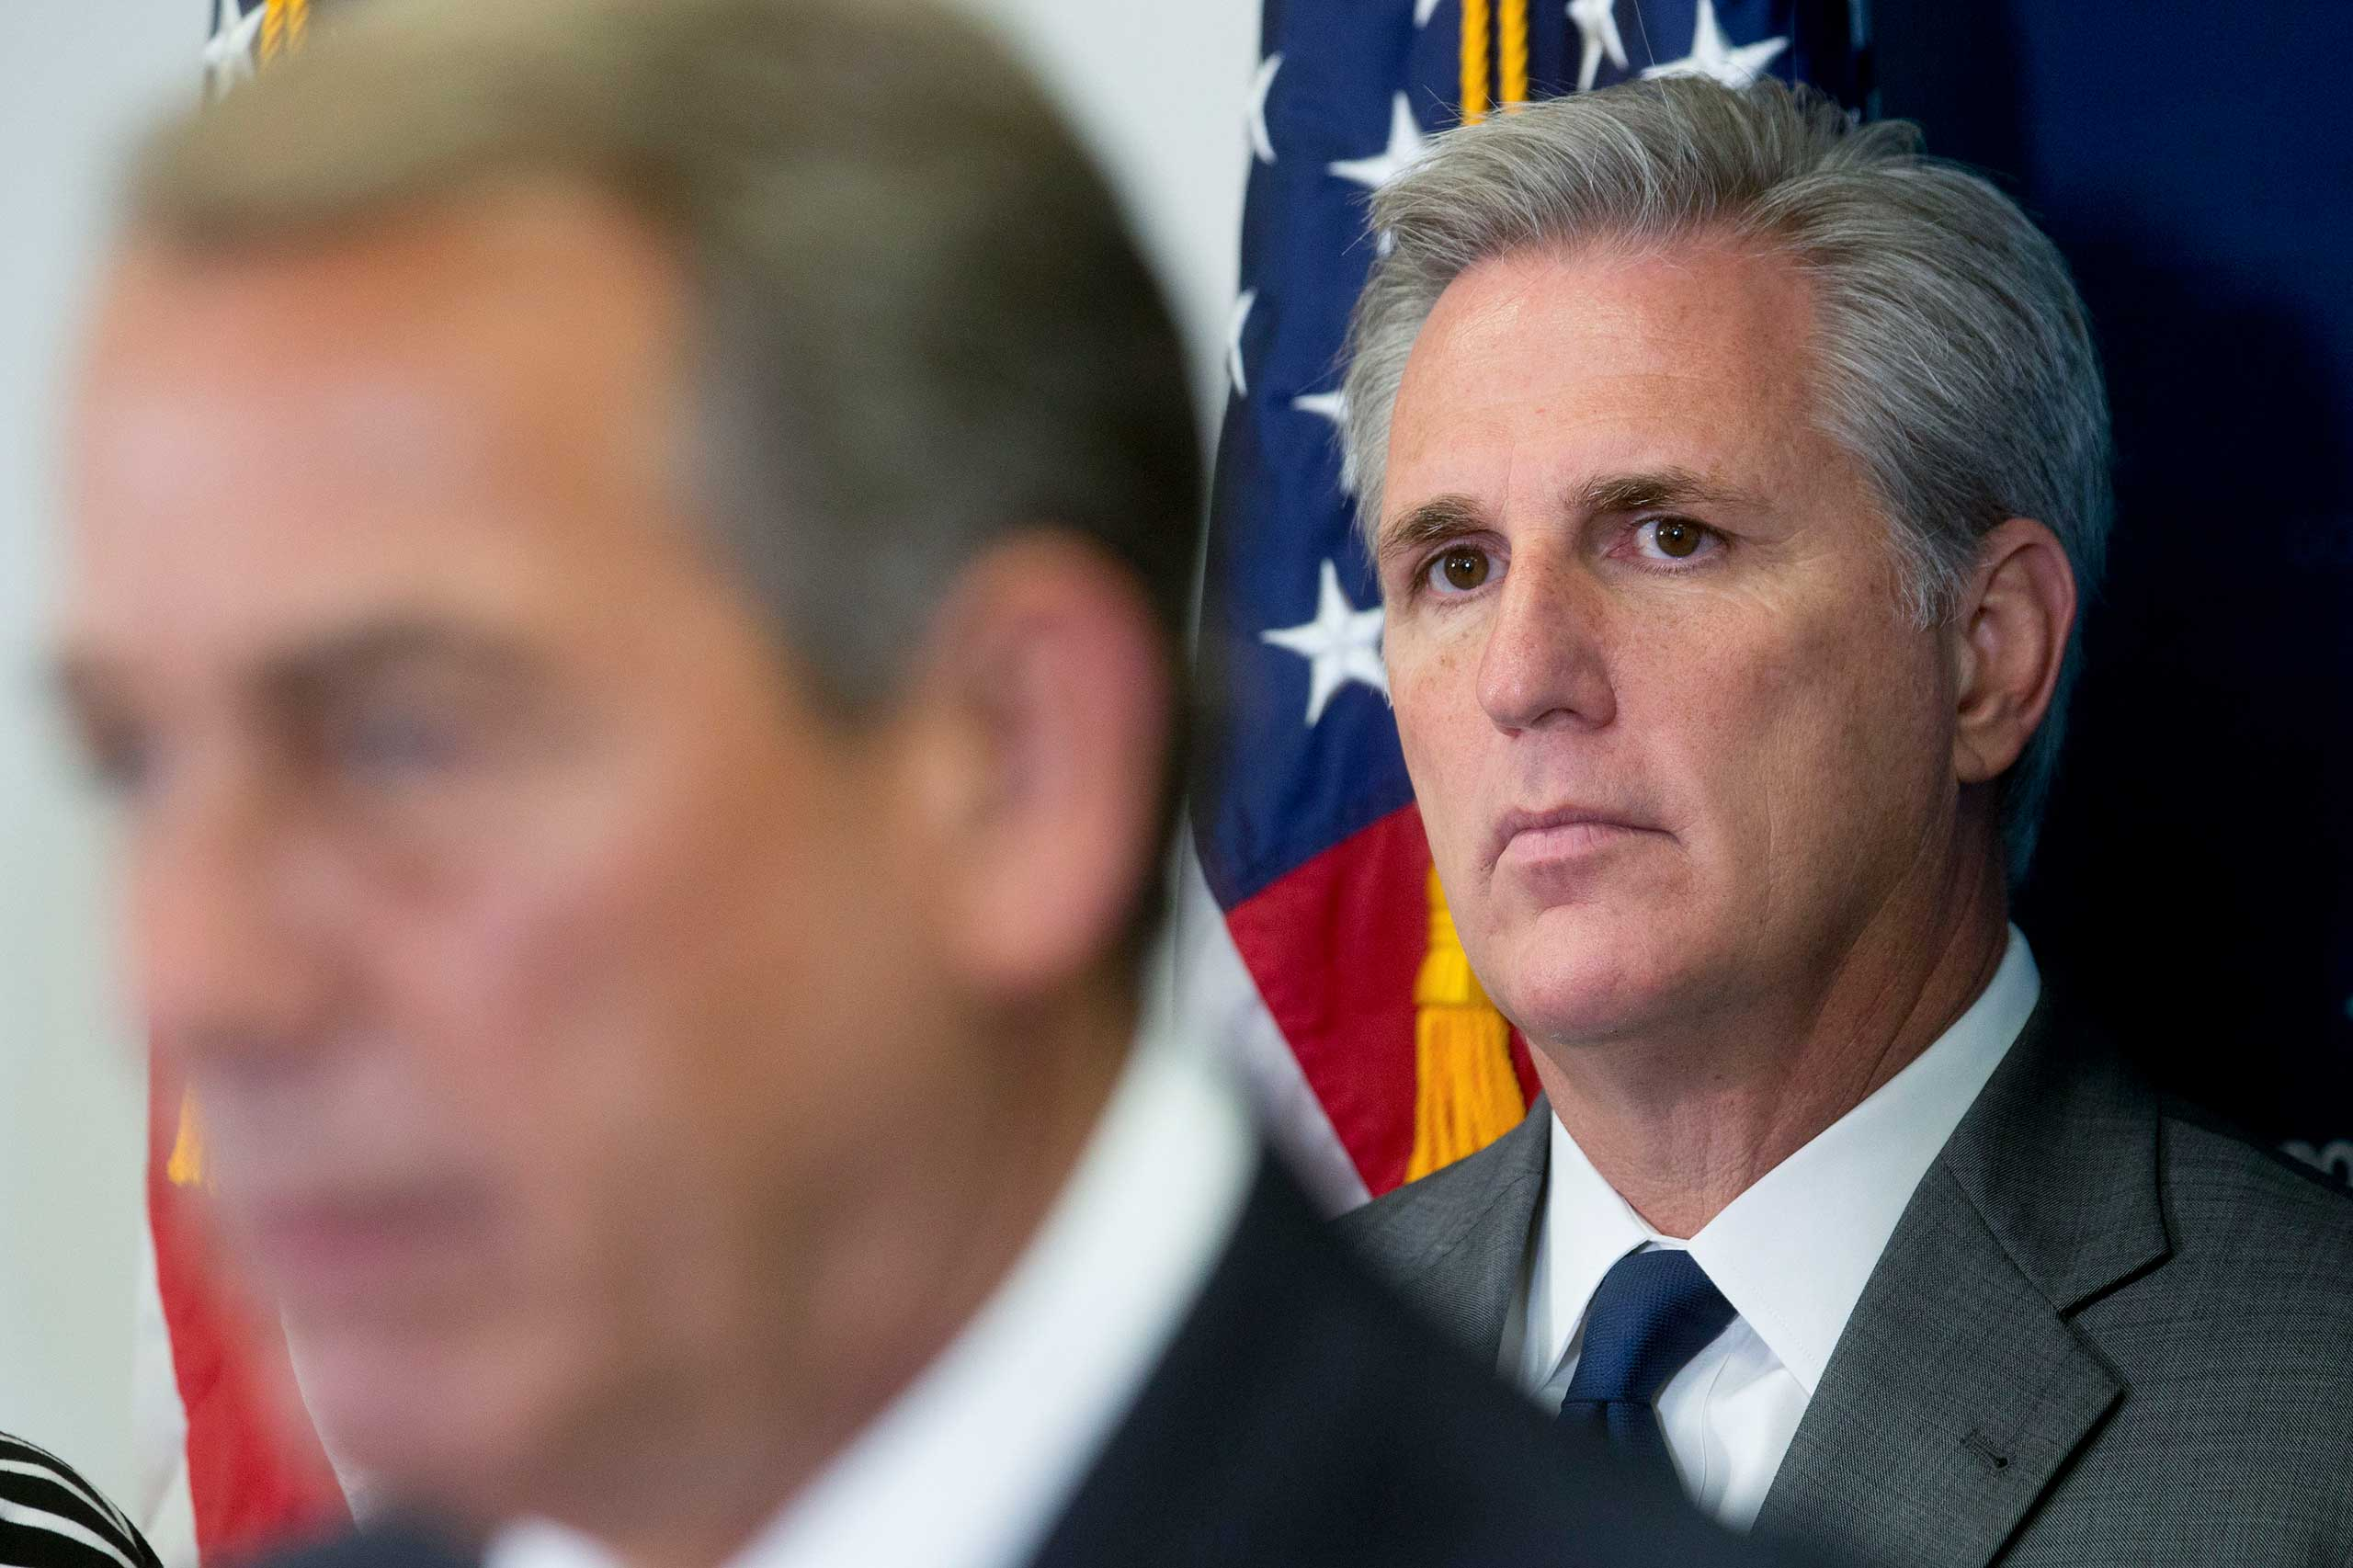 House Majority Leader Kevin McCarthy, a Republican from California, right, looks on as U.S. House Speaker John Boehner, a Republican from Ohio, speaks.